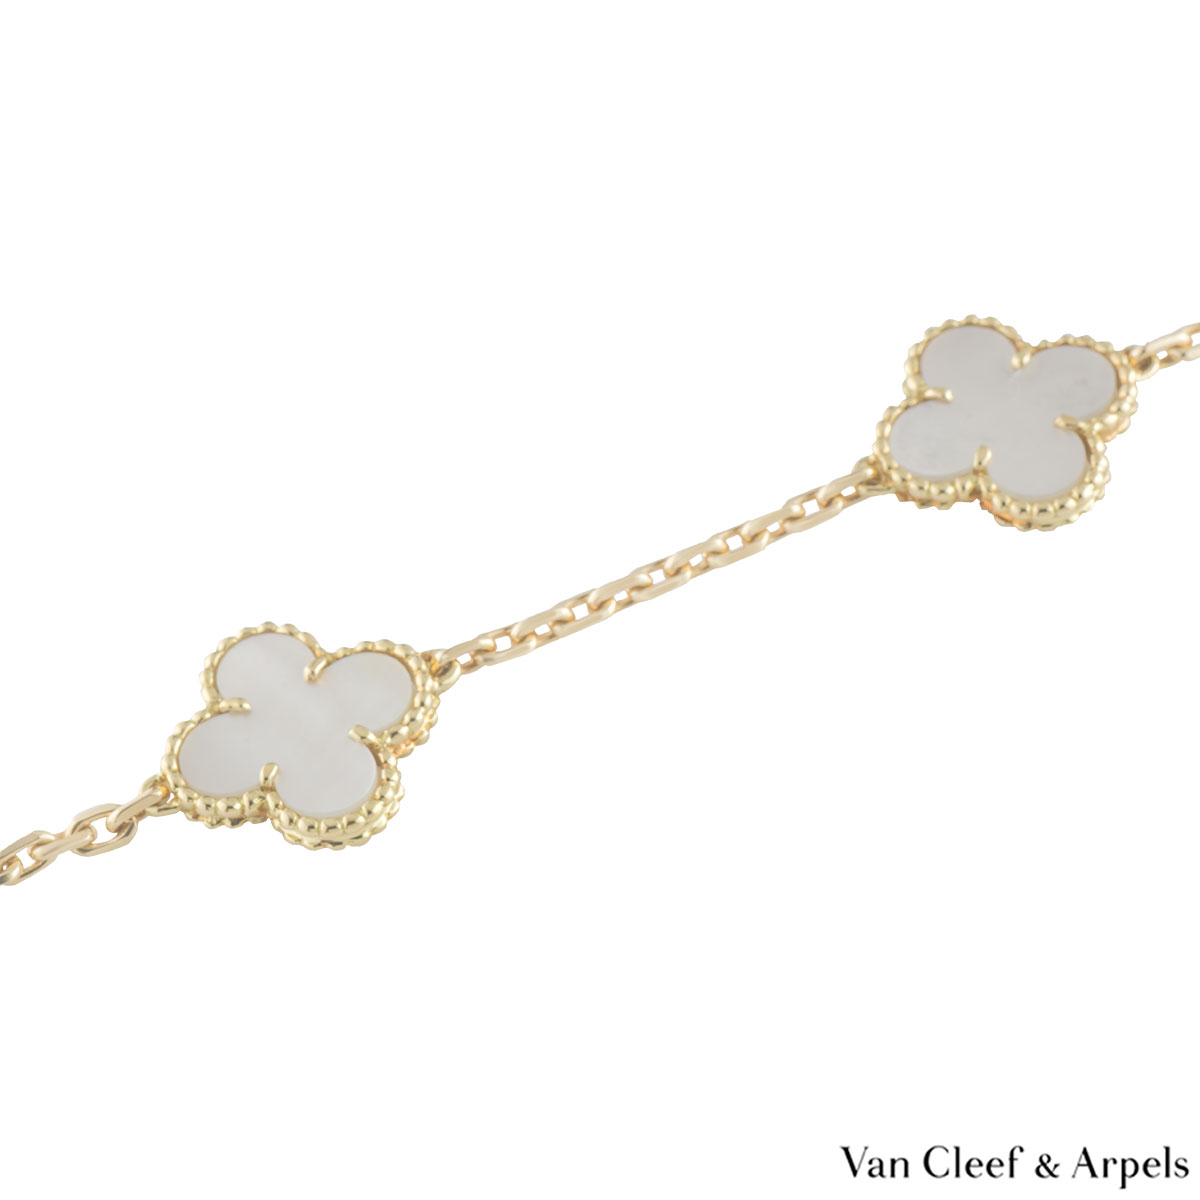 Van Cleef & Arpels Yellow Gold Vintage Alhambra Necklace VCARA42800